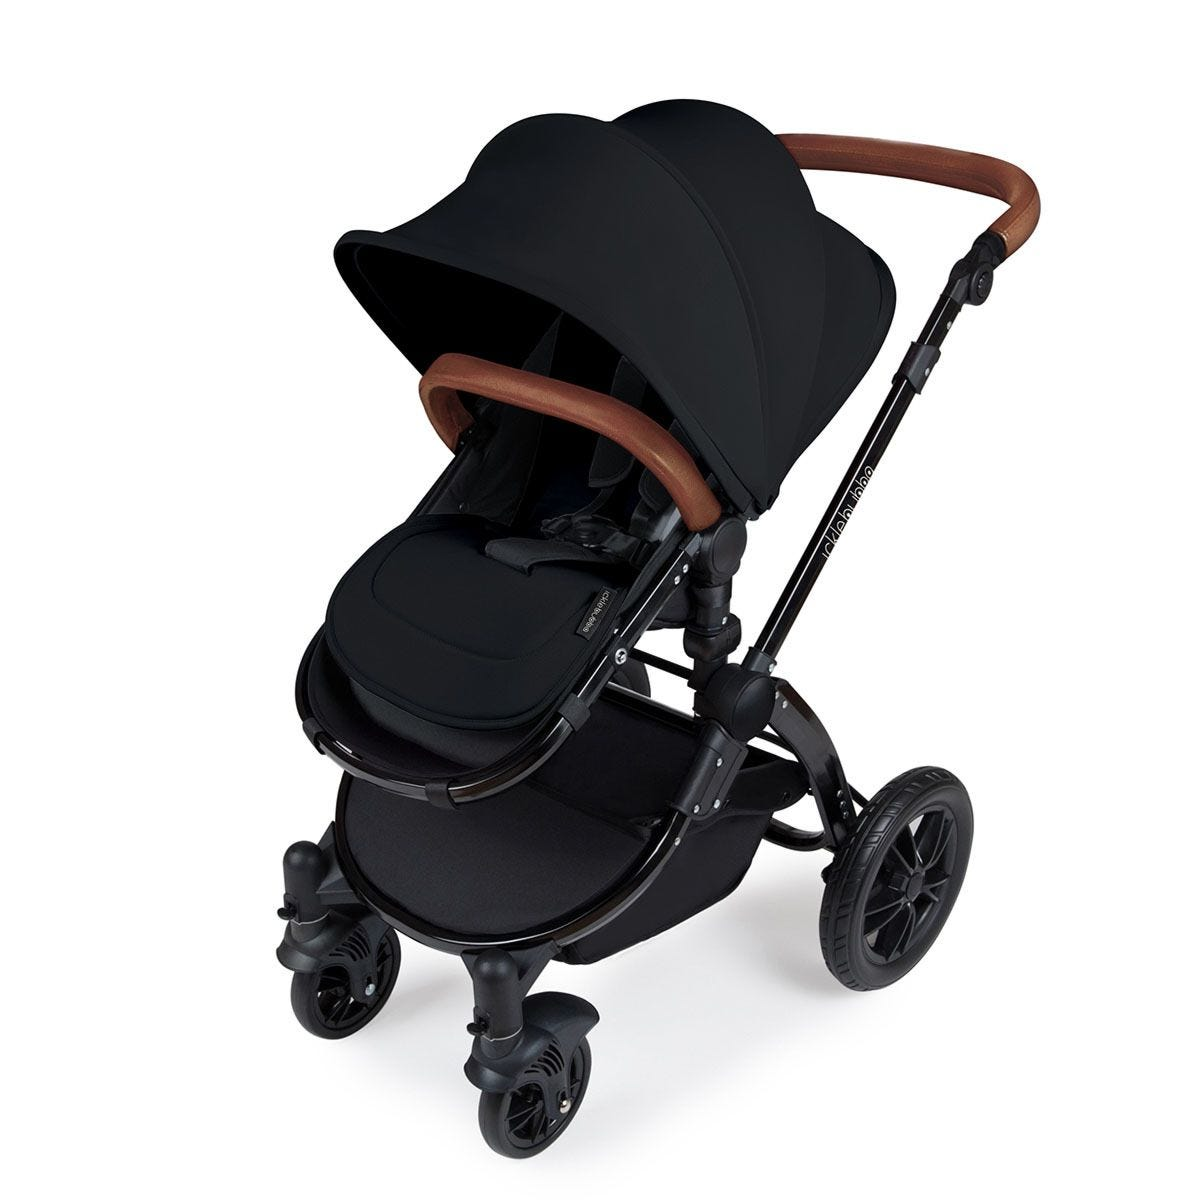 Ickle Bubba Stomp V3 All in One Travel System with Isofix Base - Black on Black with Tan Handles